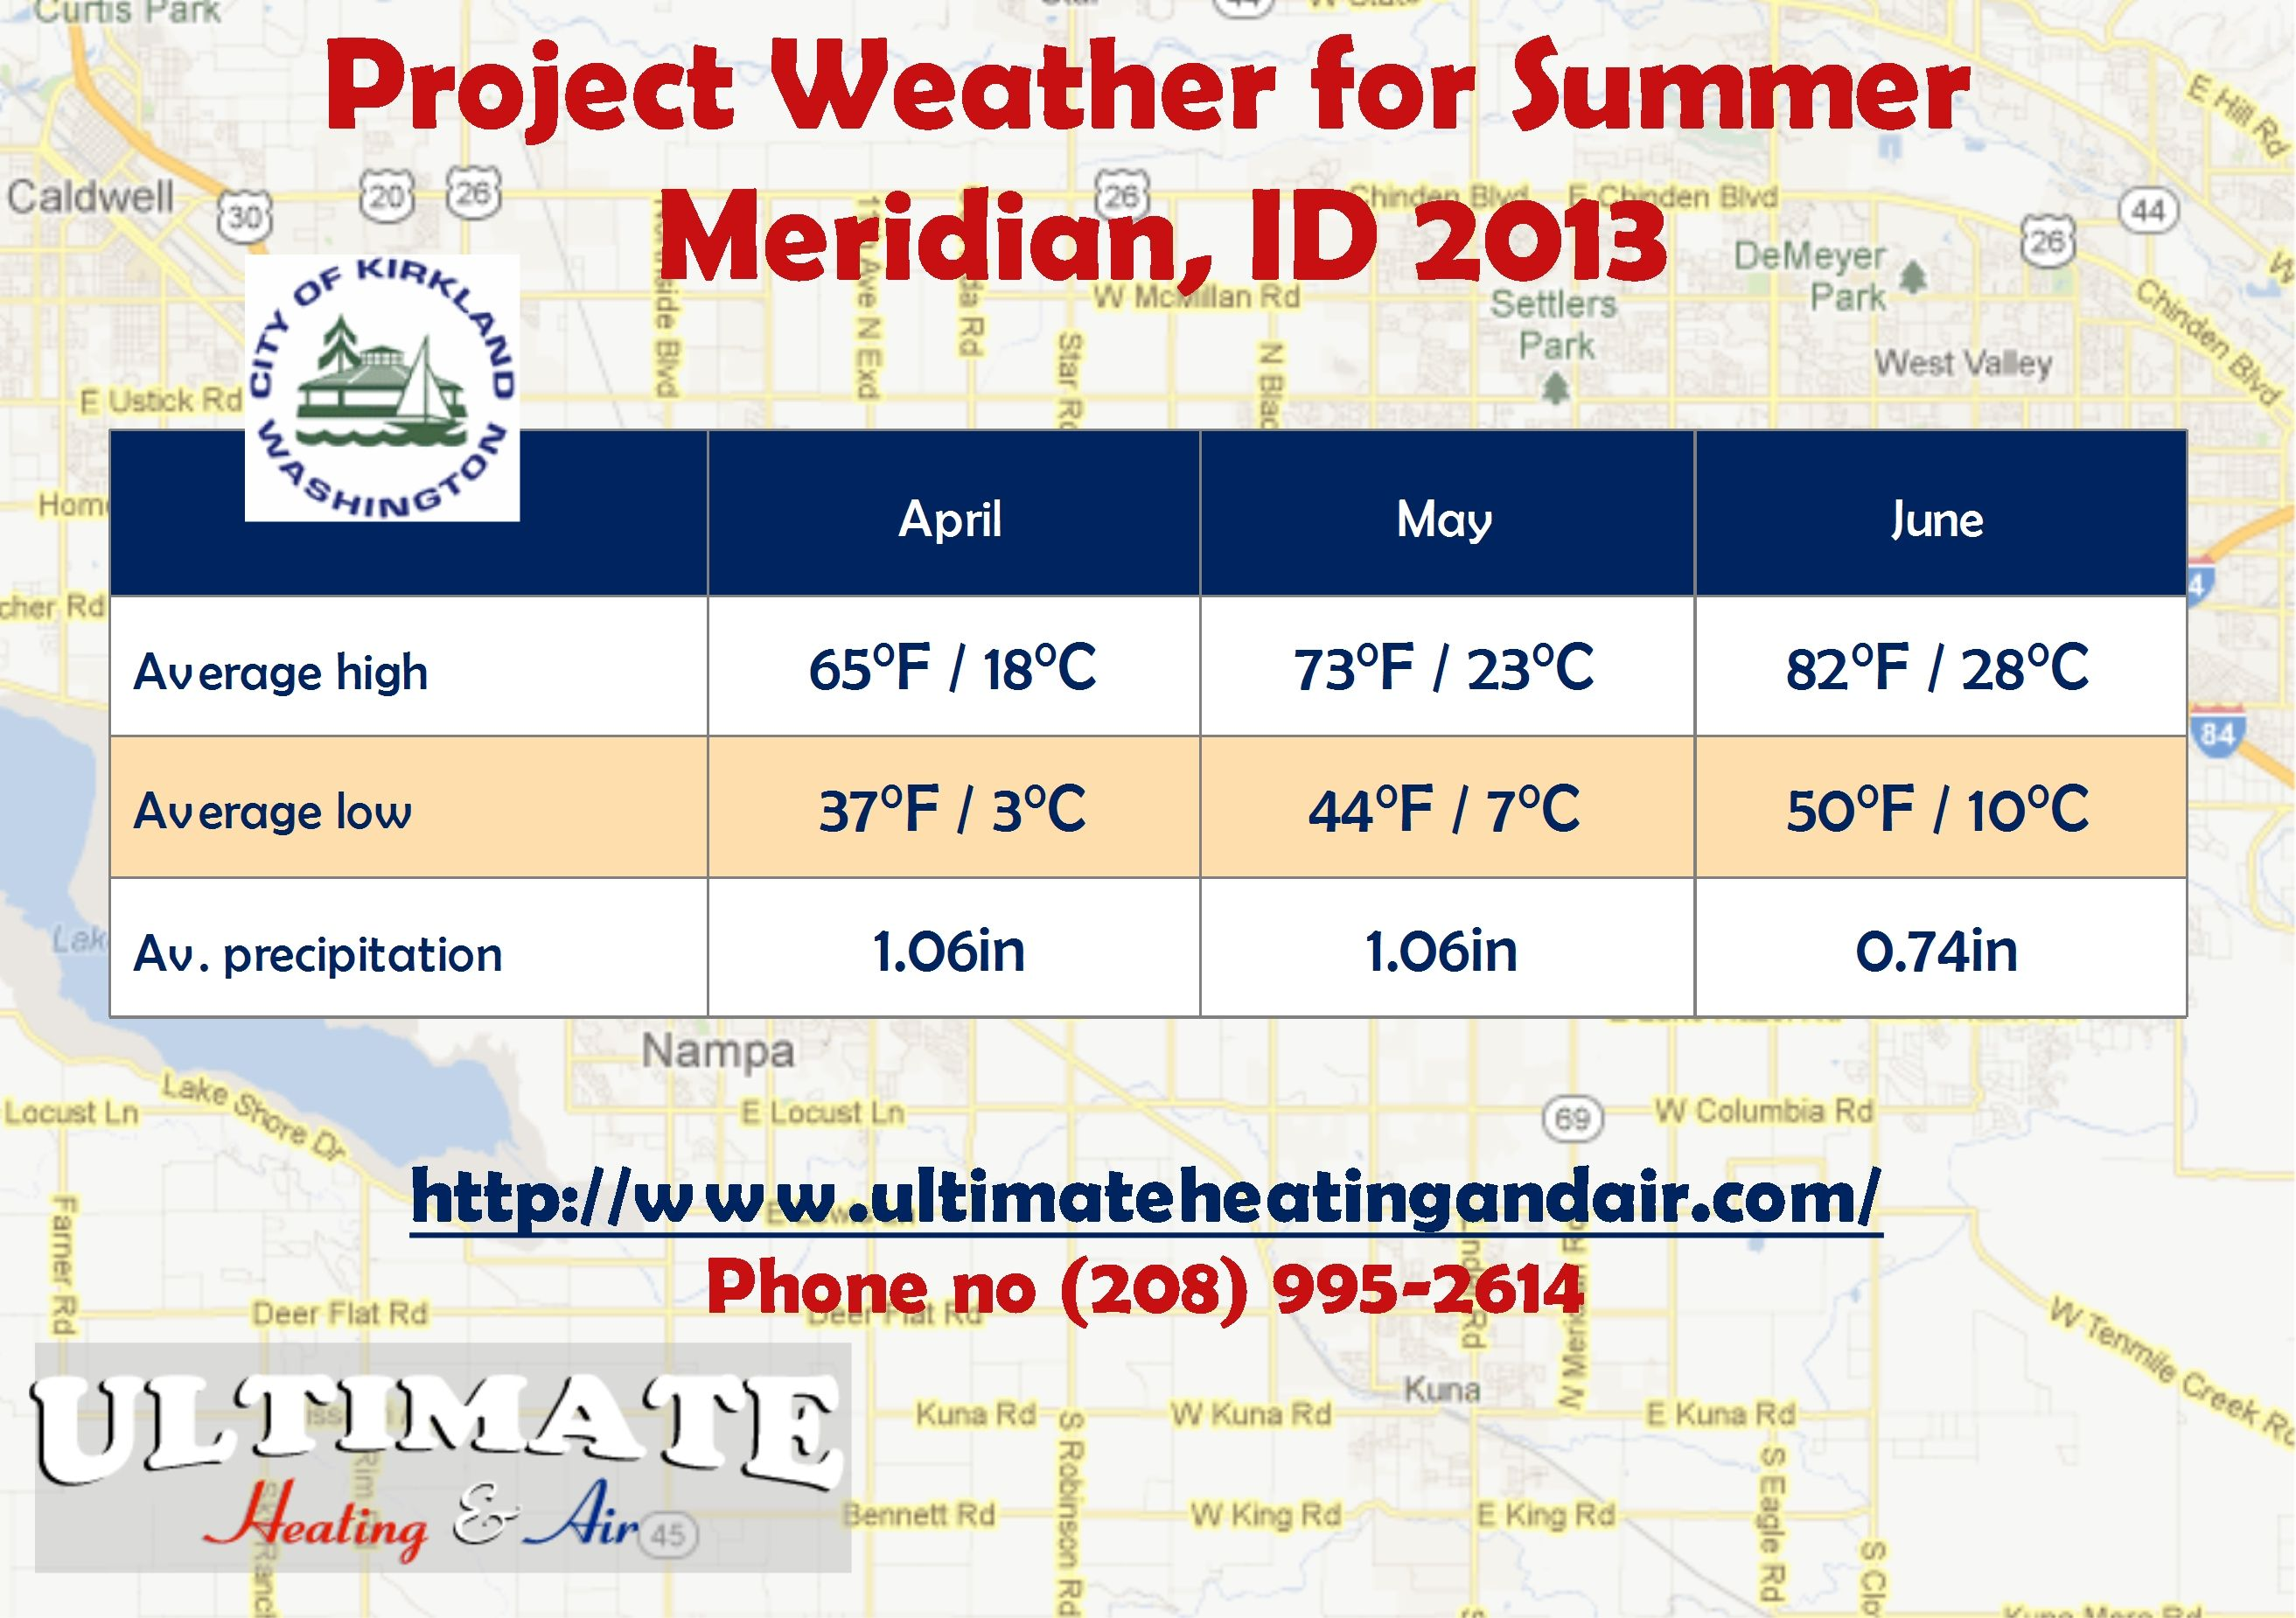 Due to increased temperature this summer, you may want to